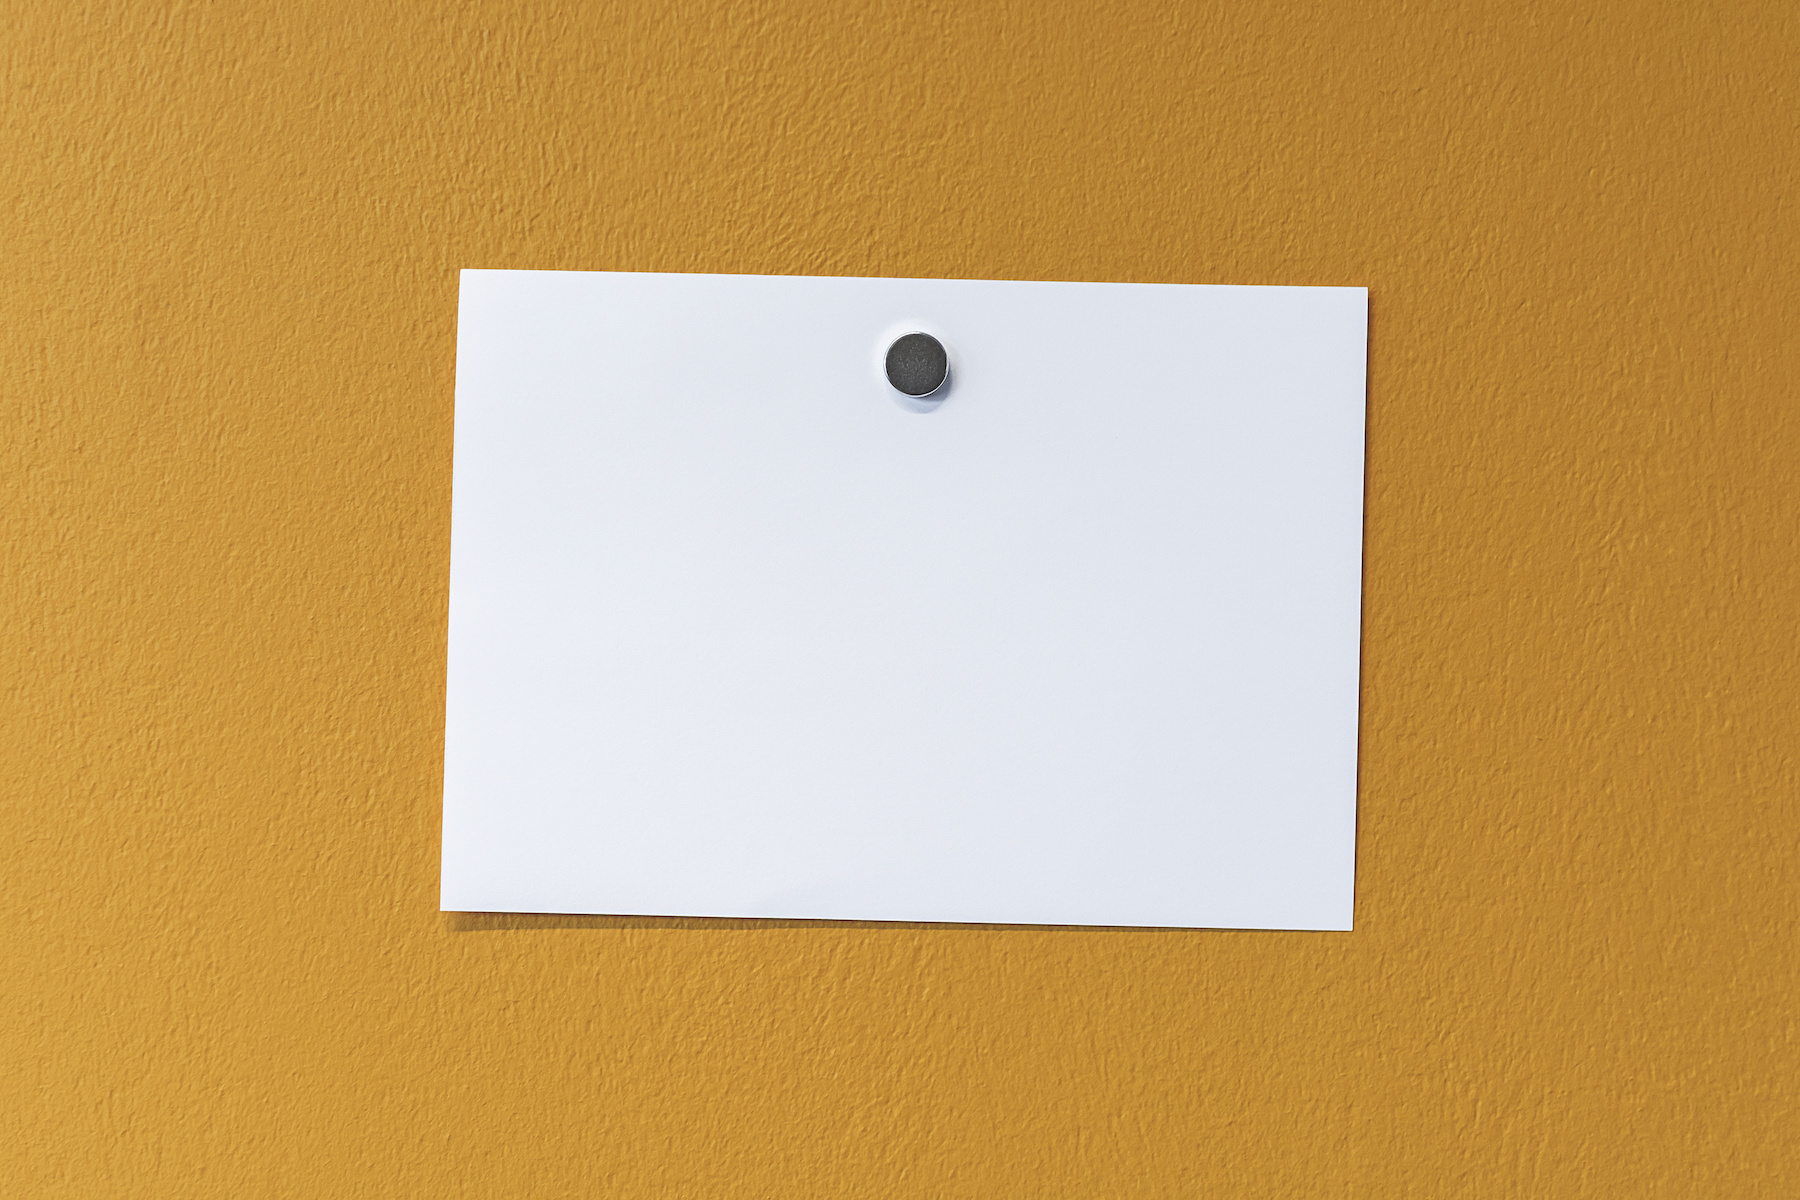 best magnetic poster and art hangers for displaying works artnews com